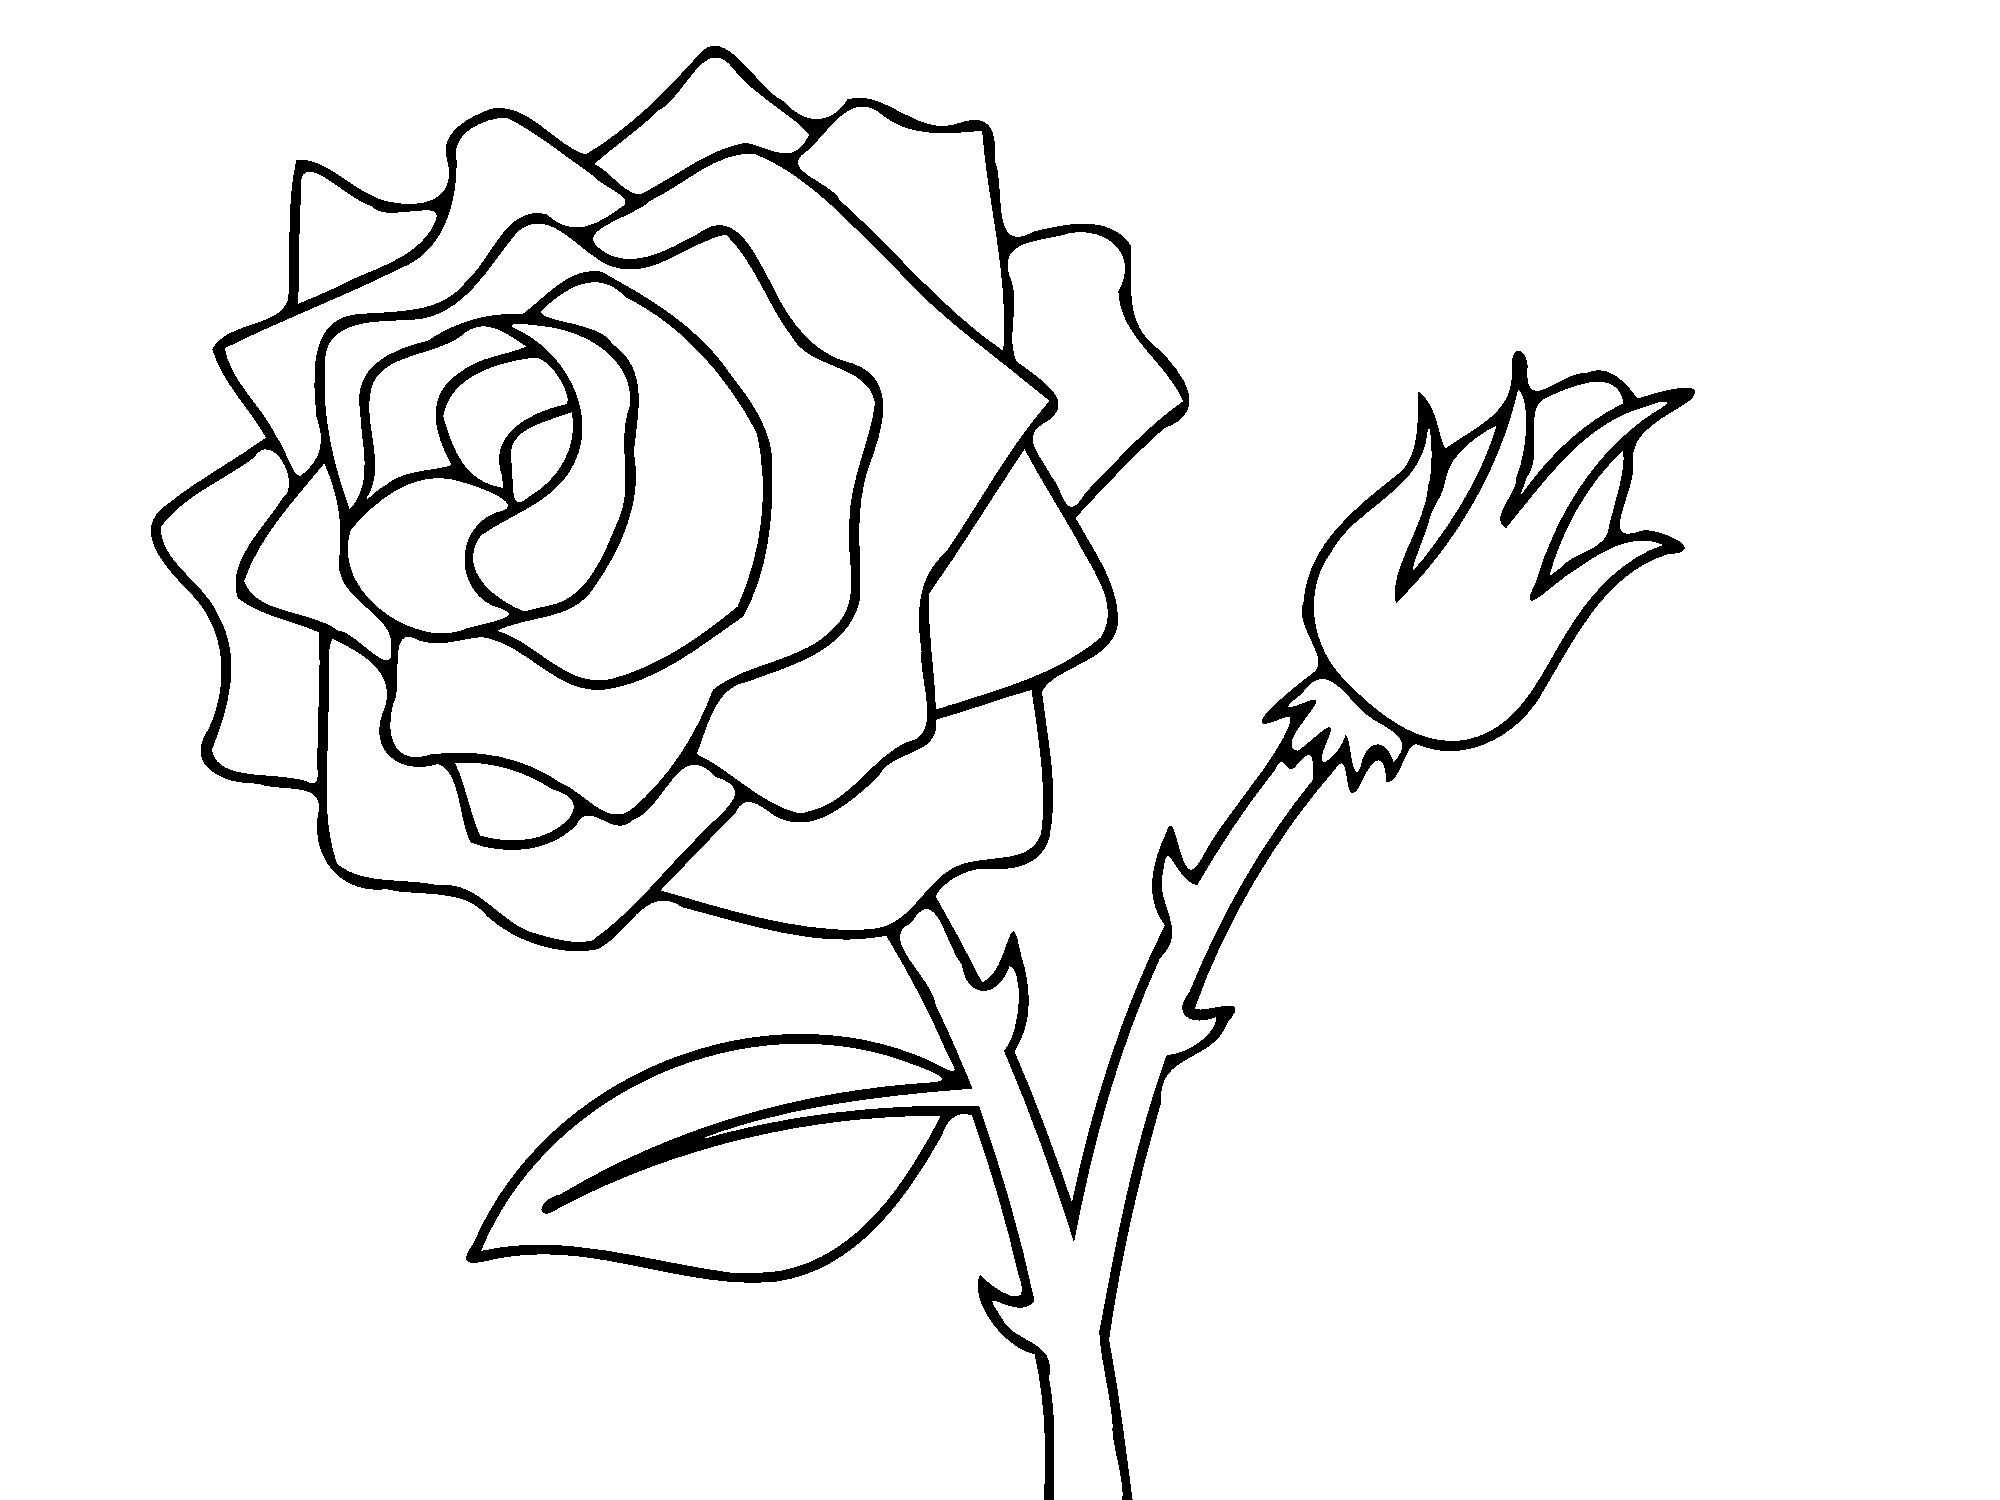 closed rose drawing at getdrawings com free for personal use